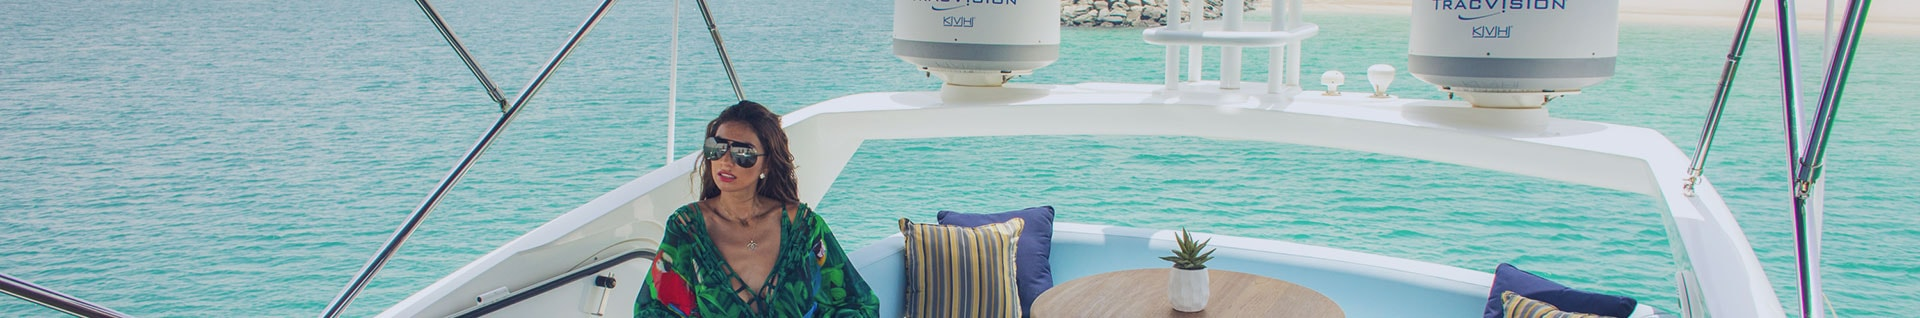 World Island - Yacht Rental Destination